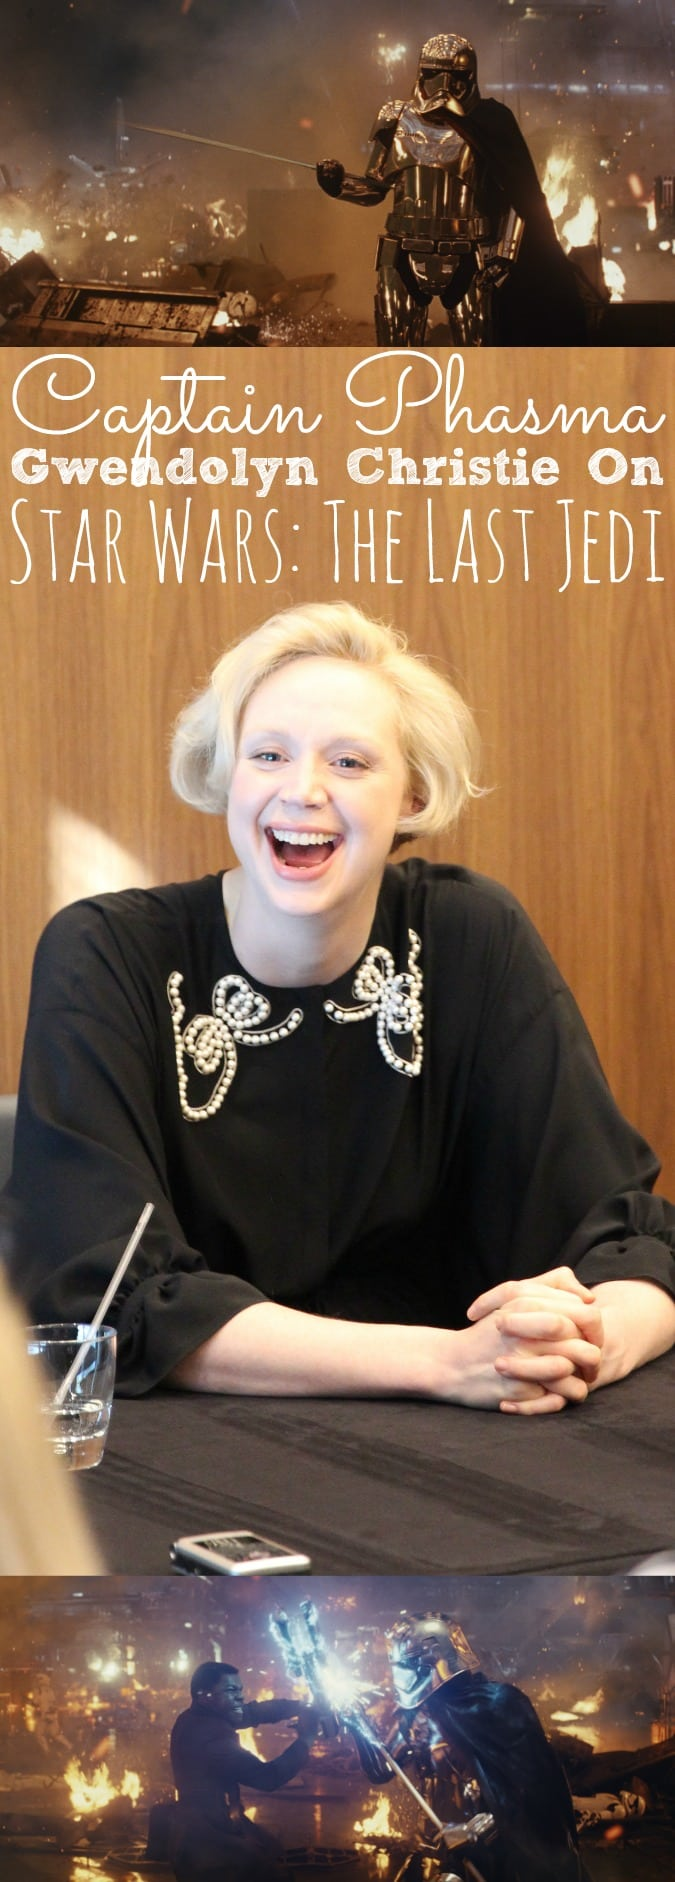 Interview with Gwendolyn Christie The Last Jedi